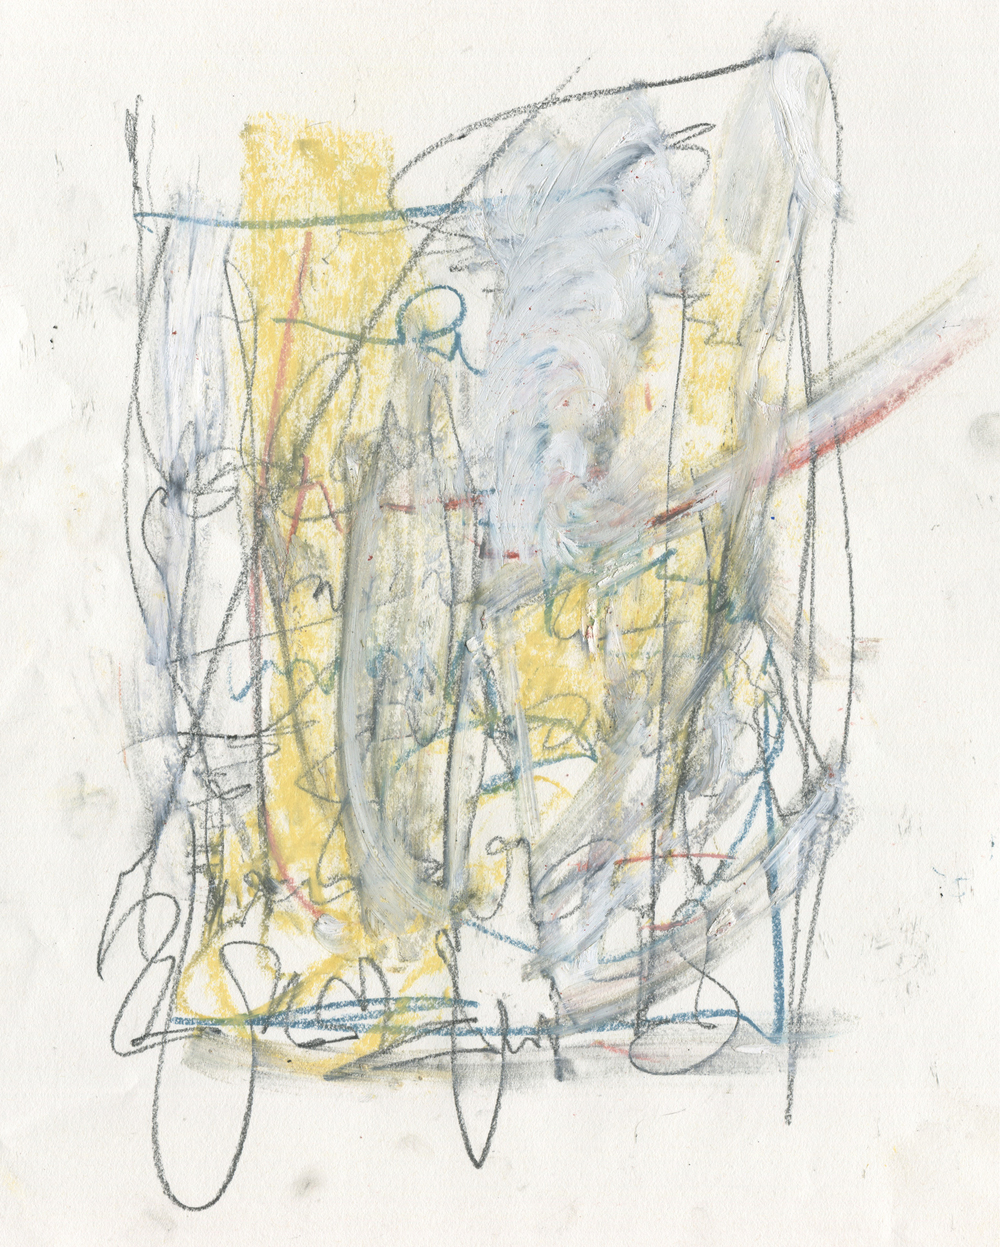 Schism , 2016  Crayon, Oil Stick, Cante Crayon, Graphite and Pastel on Paper